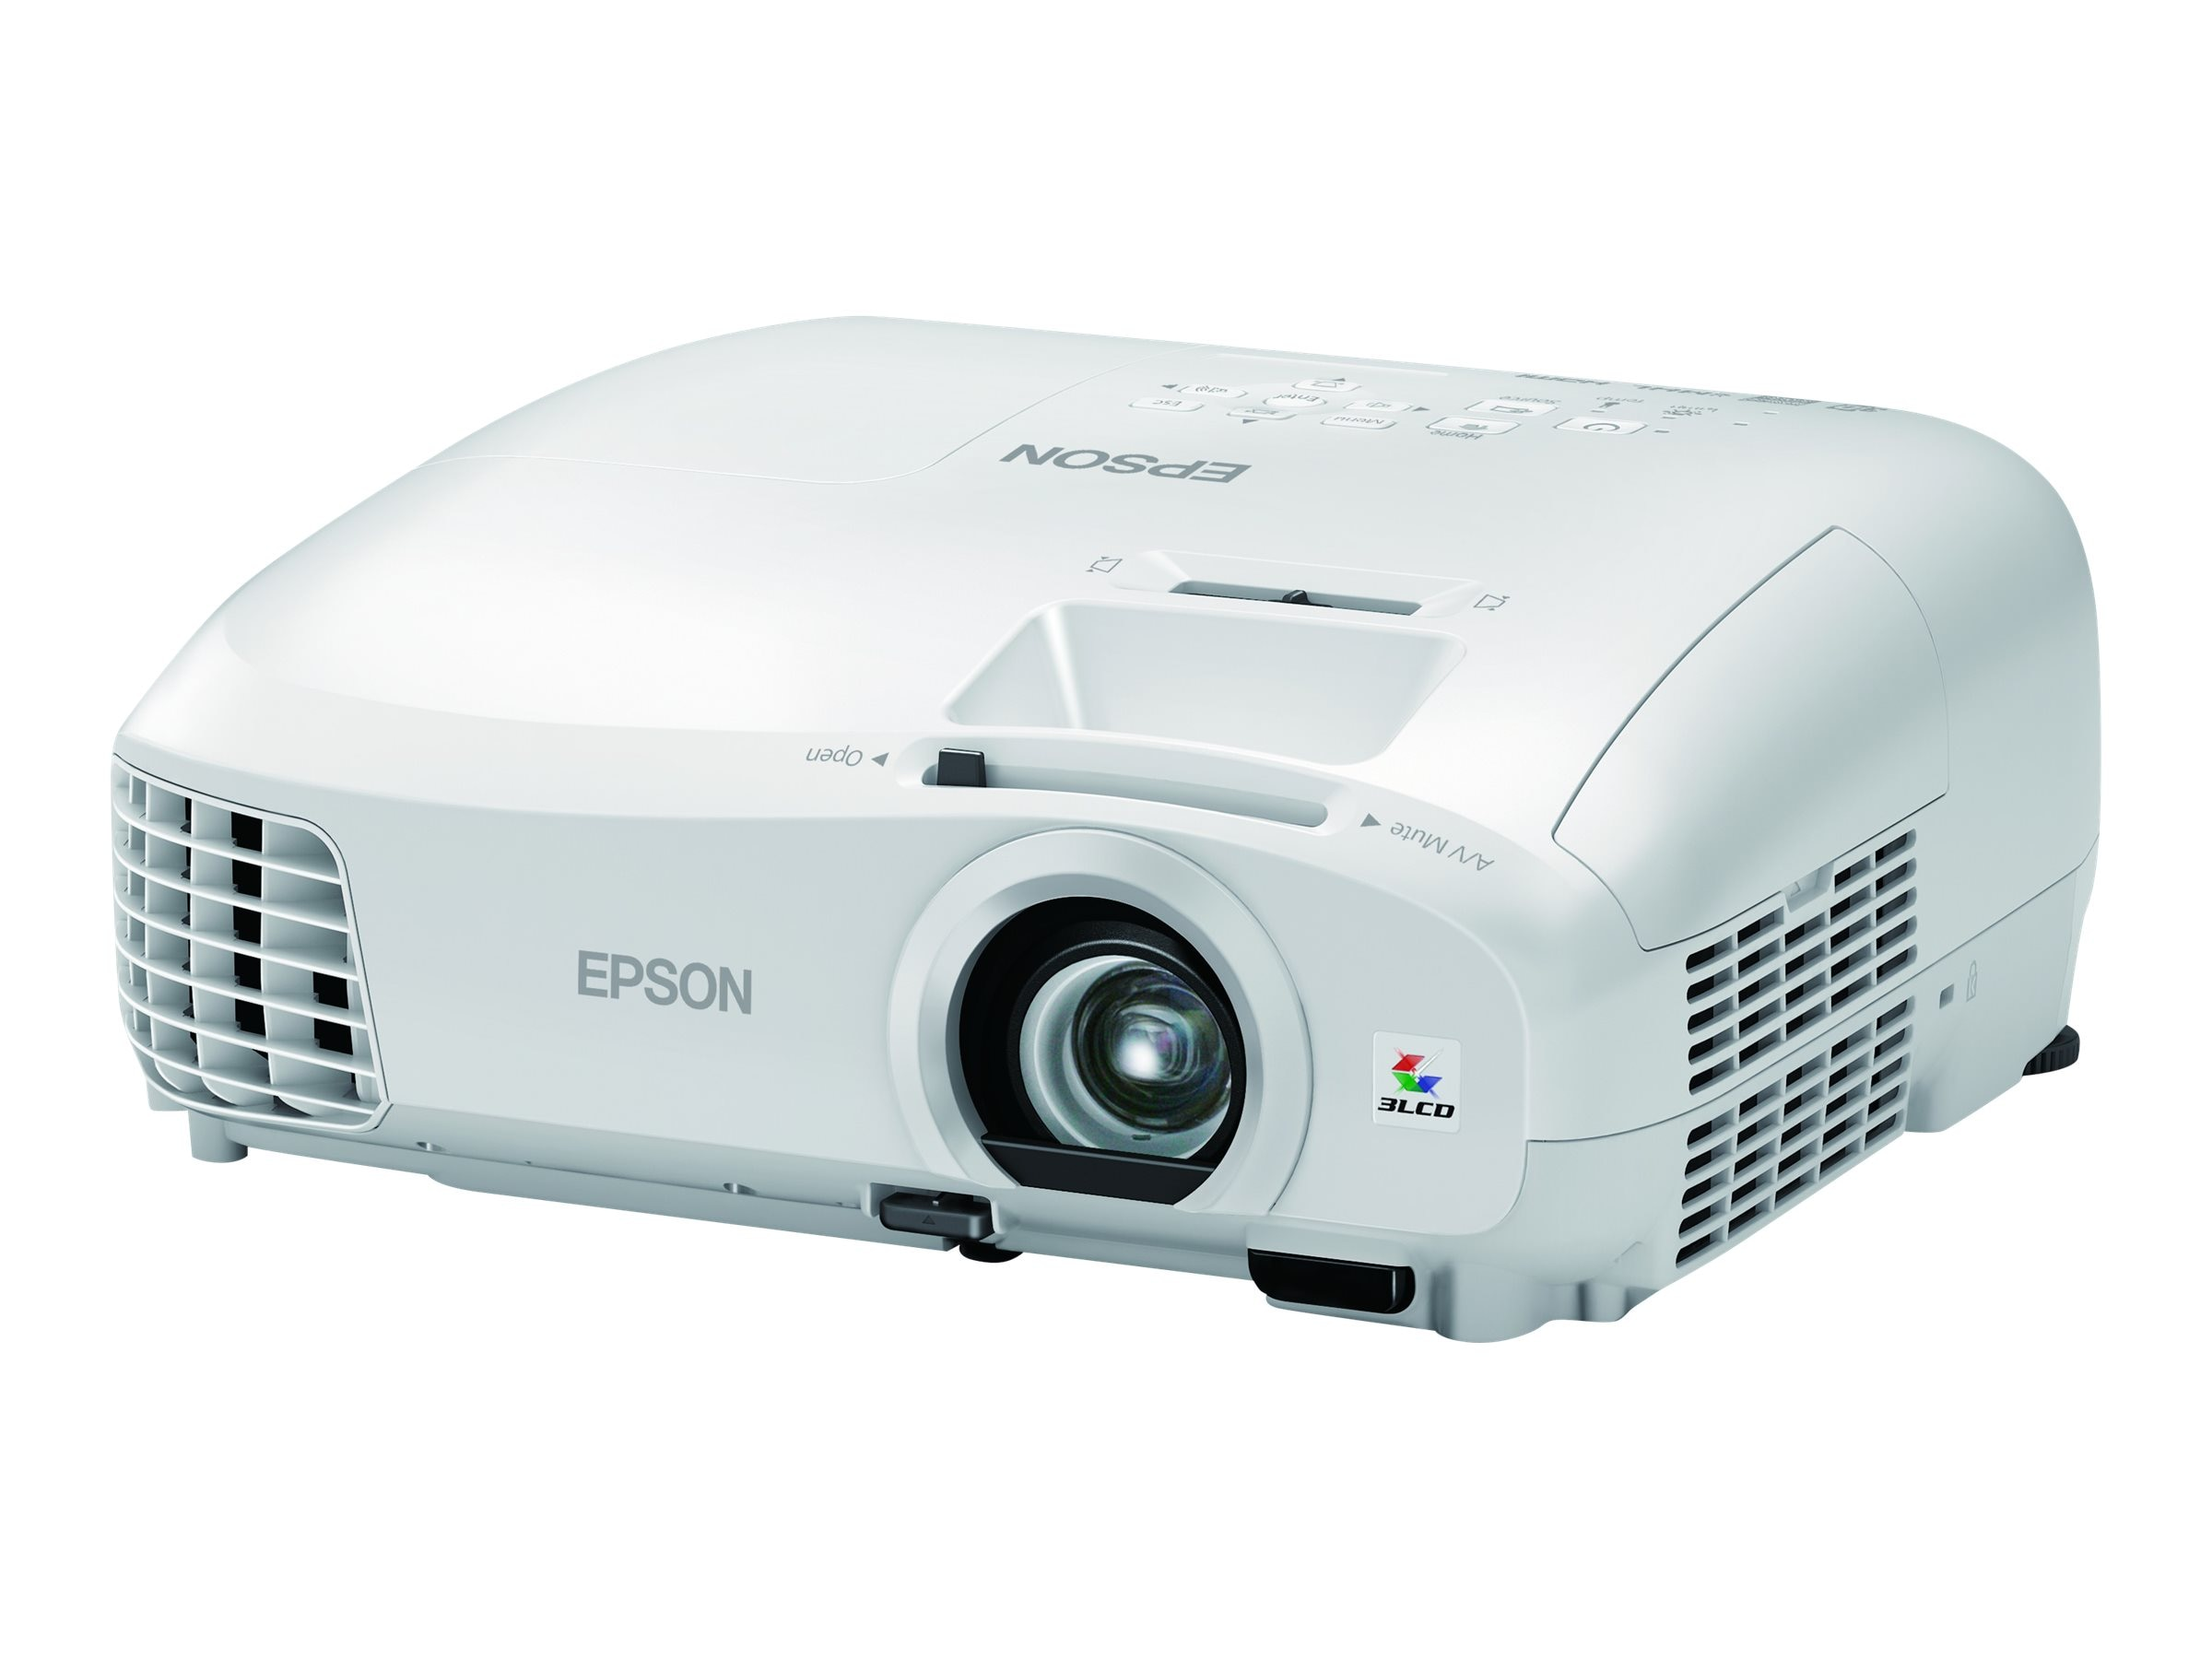 Epson PowerLite Home Cinema 2040 3D 1080p 3LCD Projector, 2200 Lumens, White